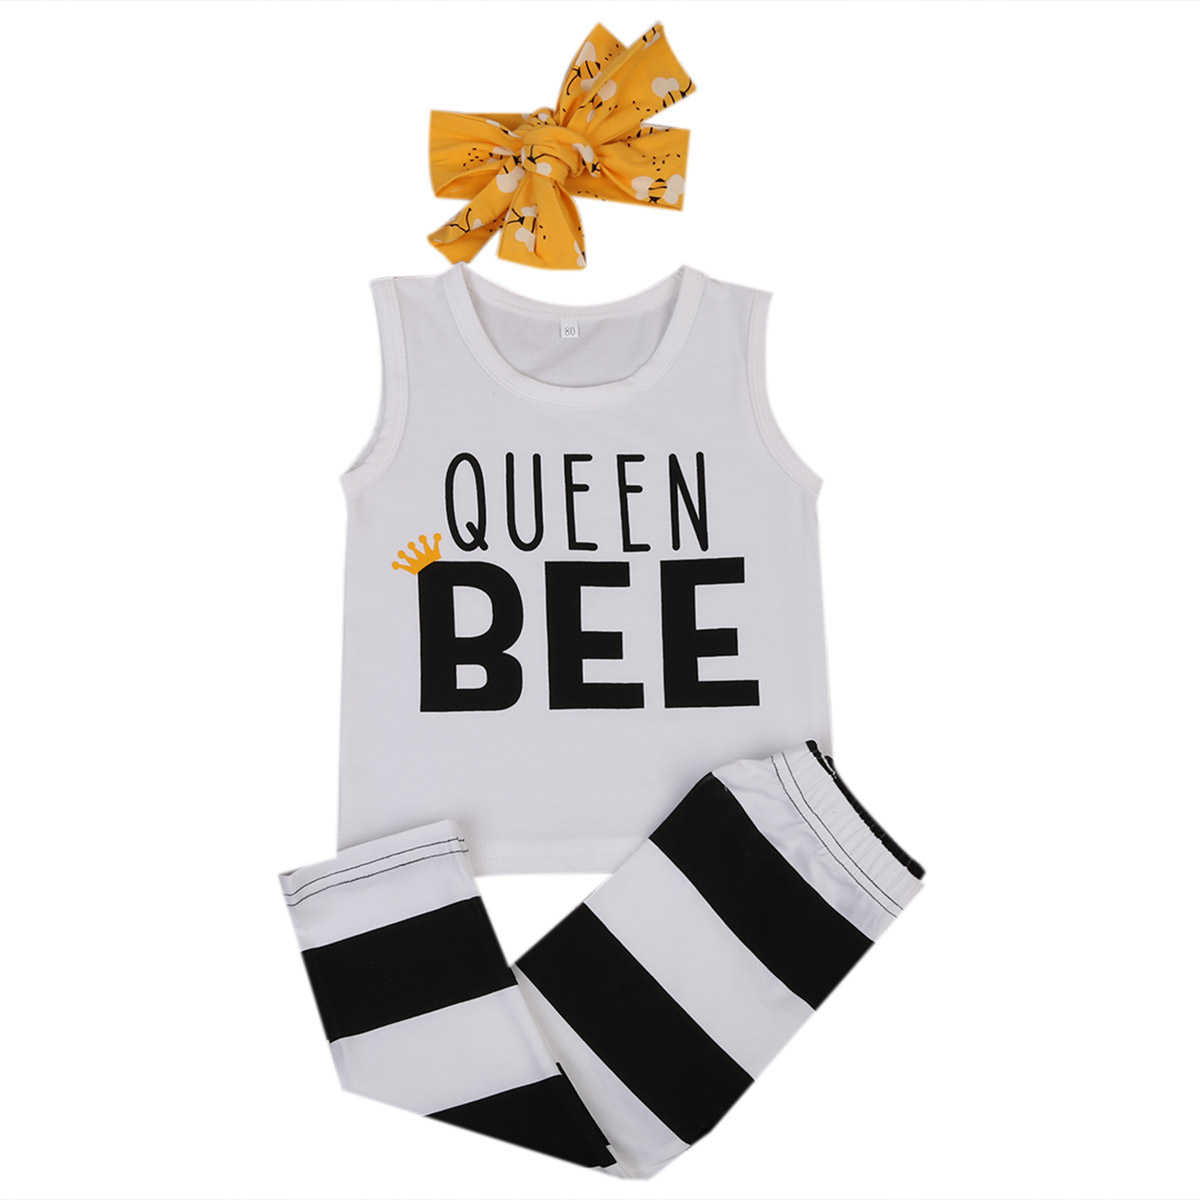 Baby Girl Vest Tops+Striped Pants Outfits Clothes Set Newborn Baby Girls Summer Sleeveless Outfits Headband 3pcs Infant Clothing newborn baby boy girl 5 pcs clothing set cotton cartoon monk tops pants bib hats infant clothes 0 3 months hight quality